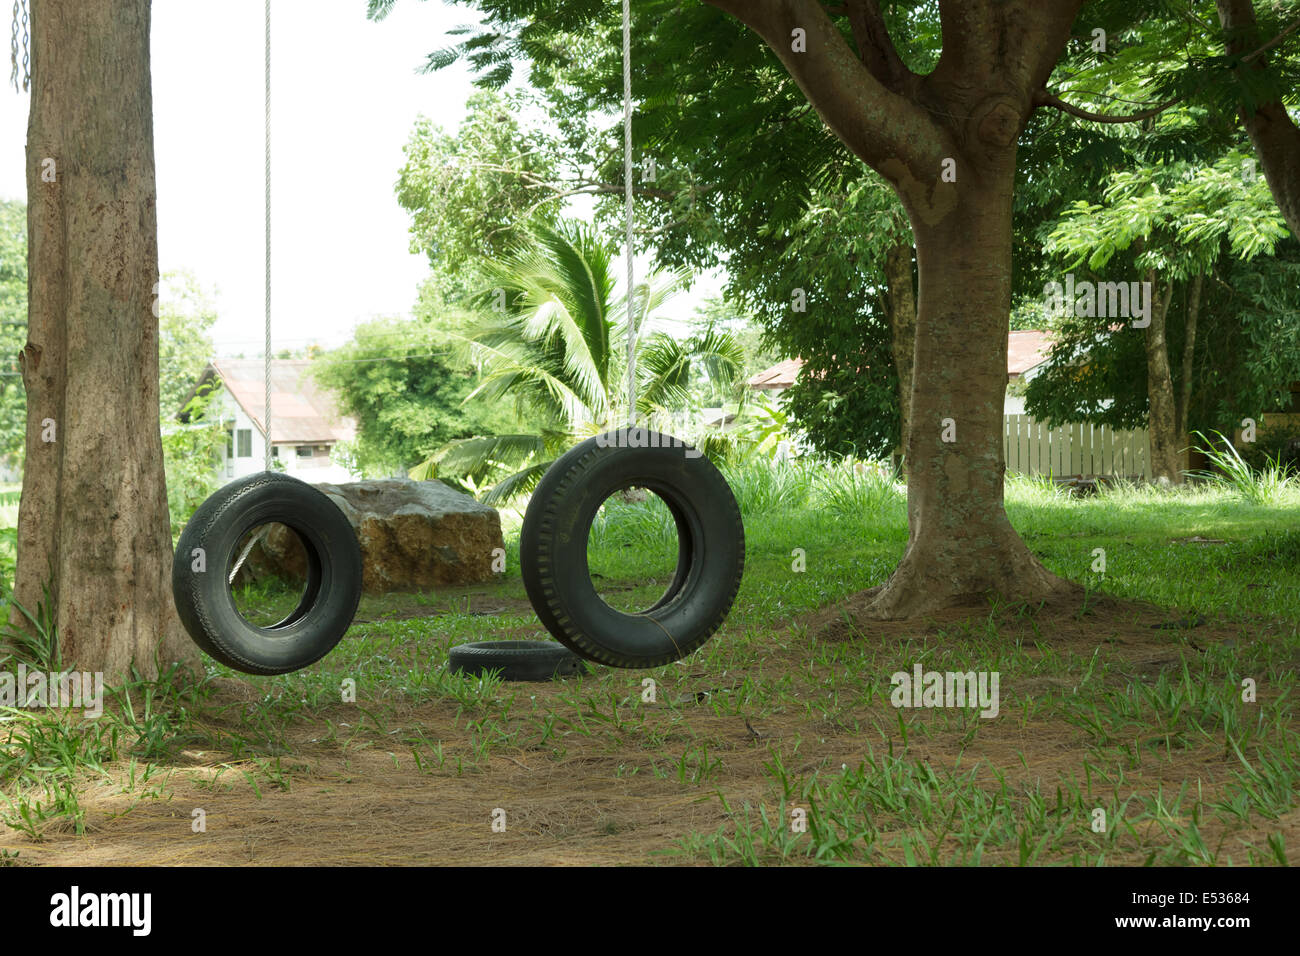 Tires Boy Scout camp - Stock Image